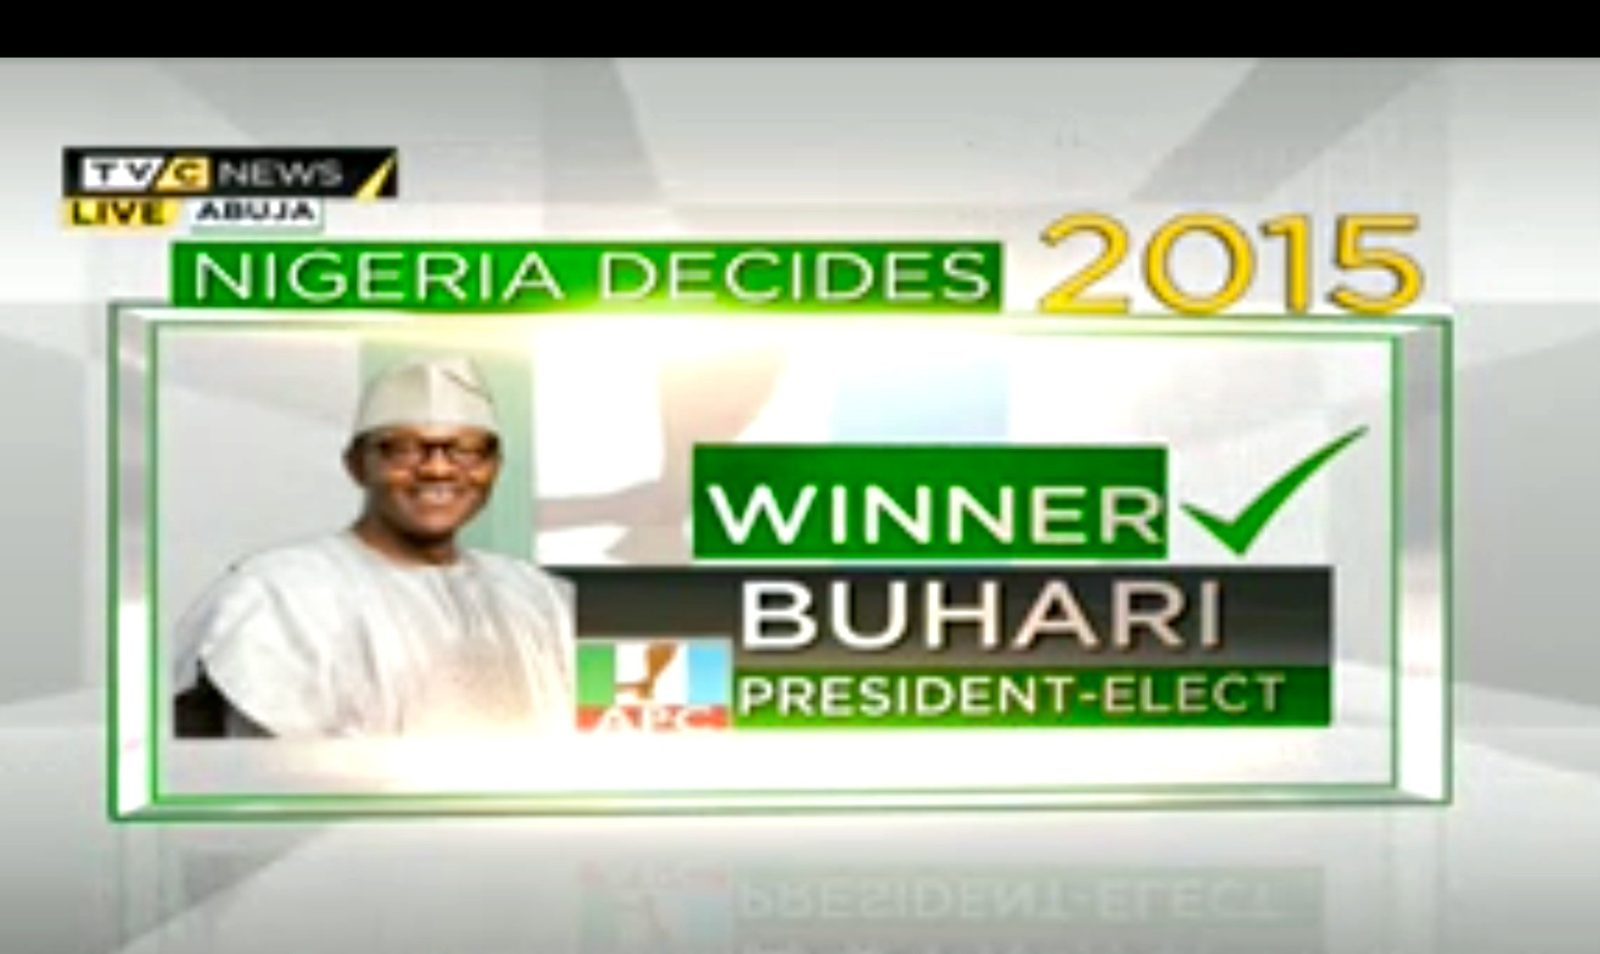 Nigeria 2015 Election Results – Muhammadu Buhari wins presidency